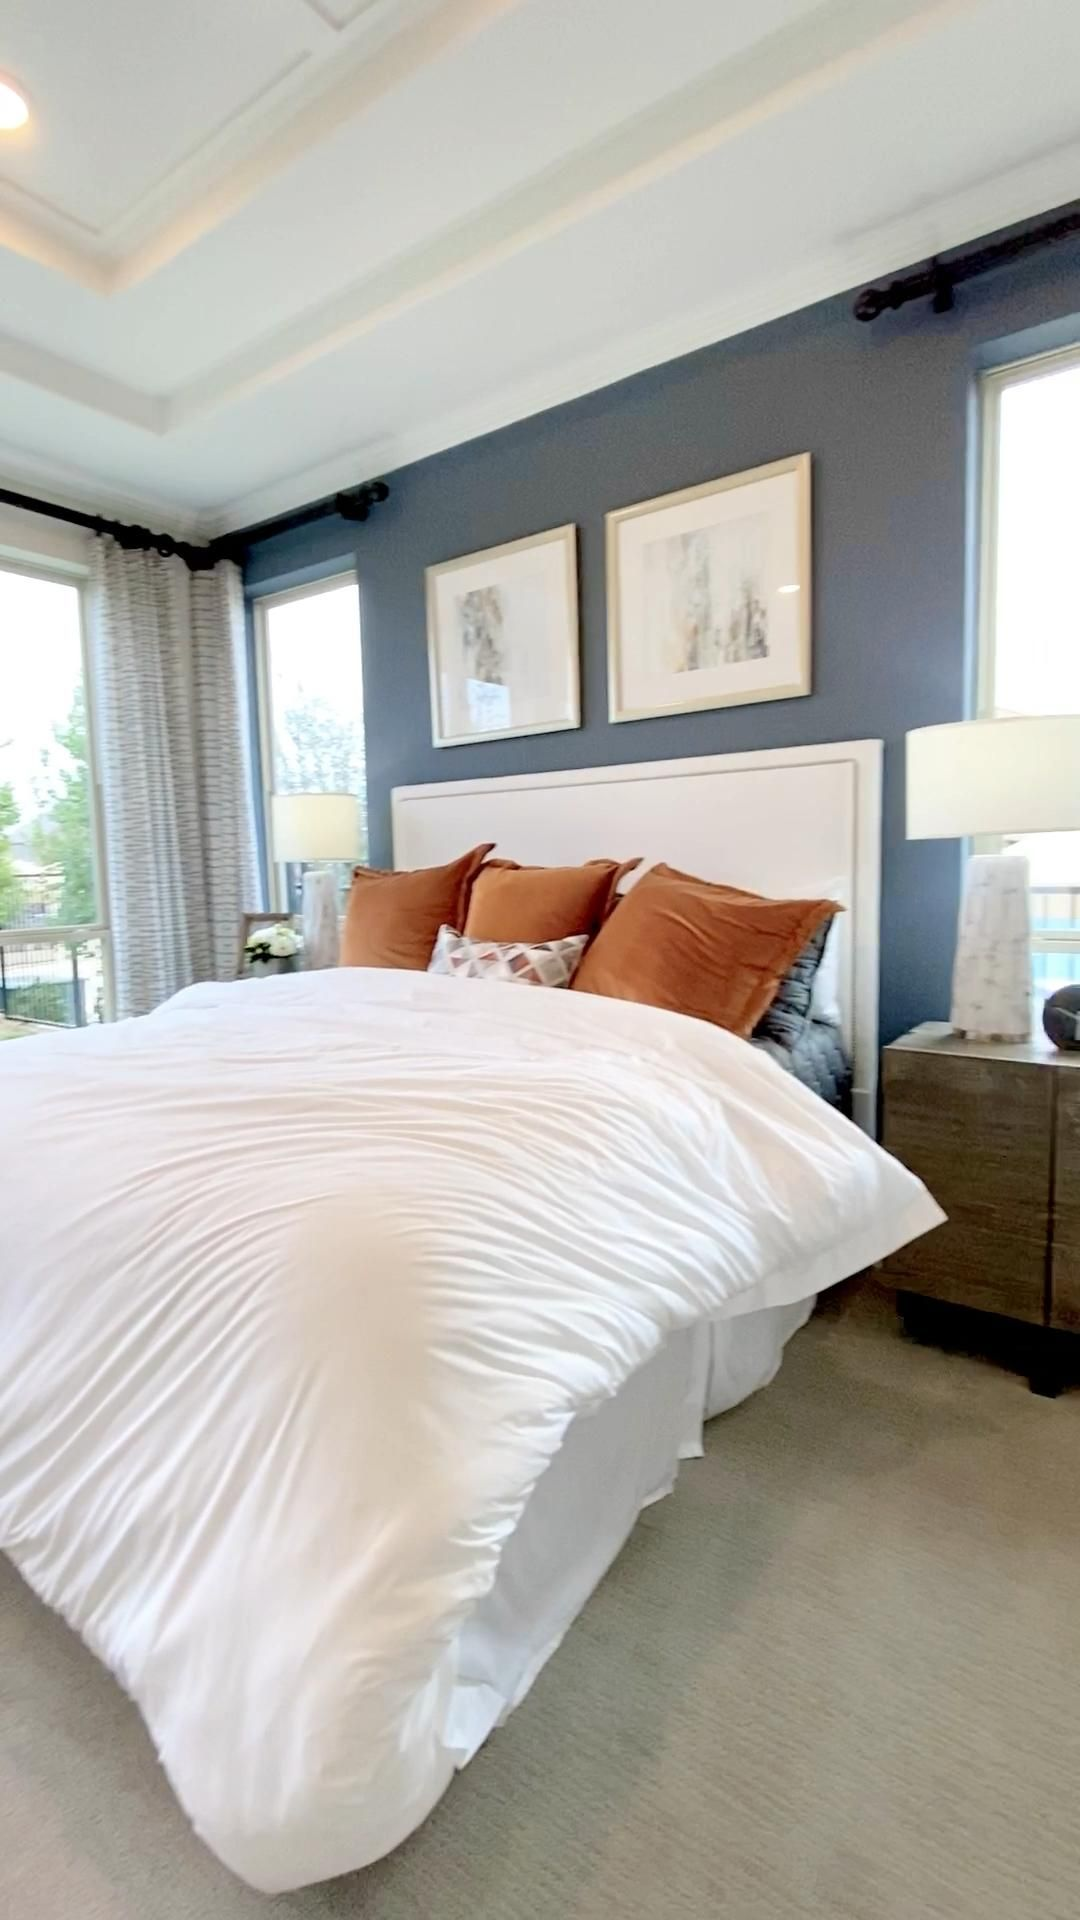 Beautiful owners suite with blue feature wall, white bedding, and seating area.  Click to see more model home decor inspiration photos... THE DECORATING COACH